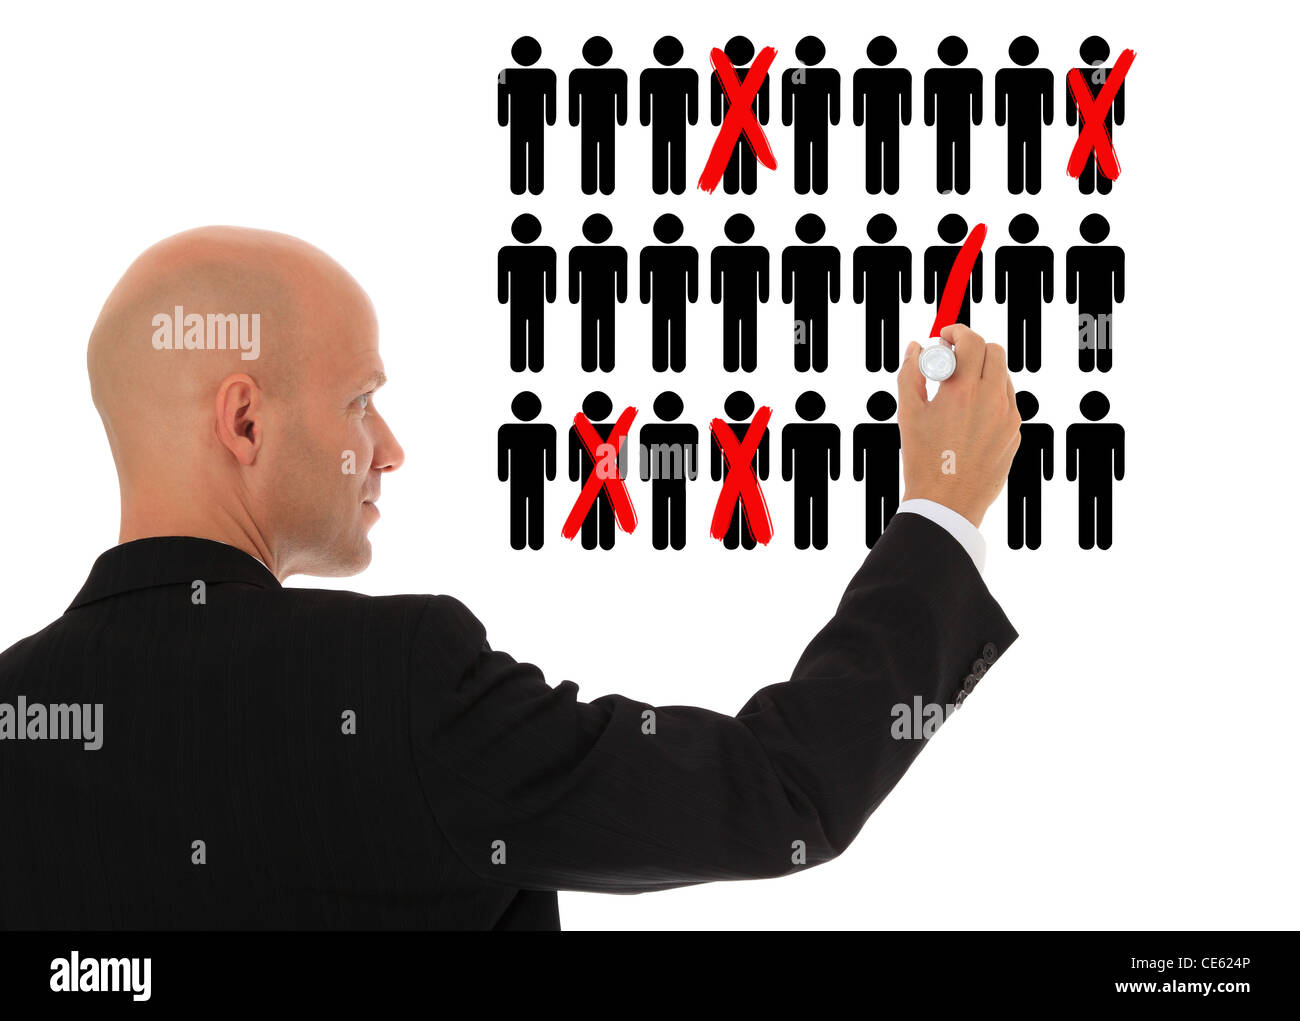 Businessman cutting back jobs. All on white background. - Stock Image